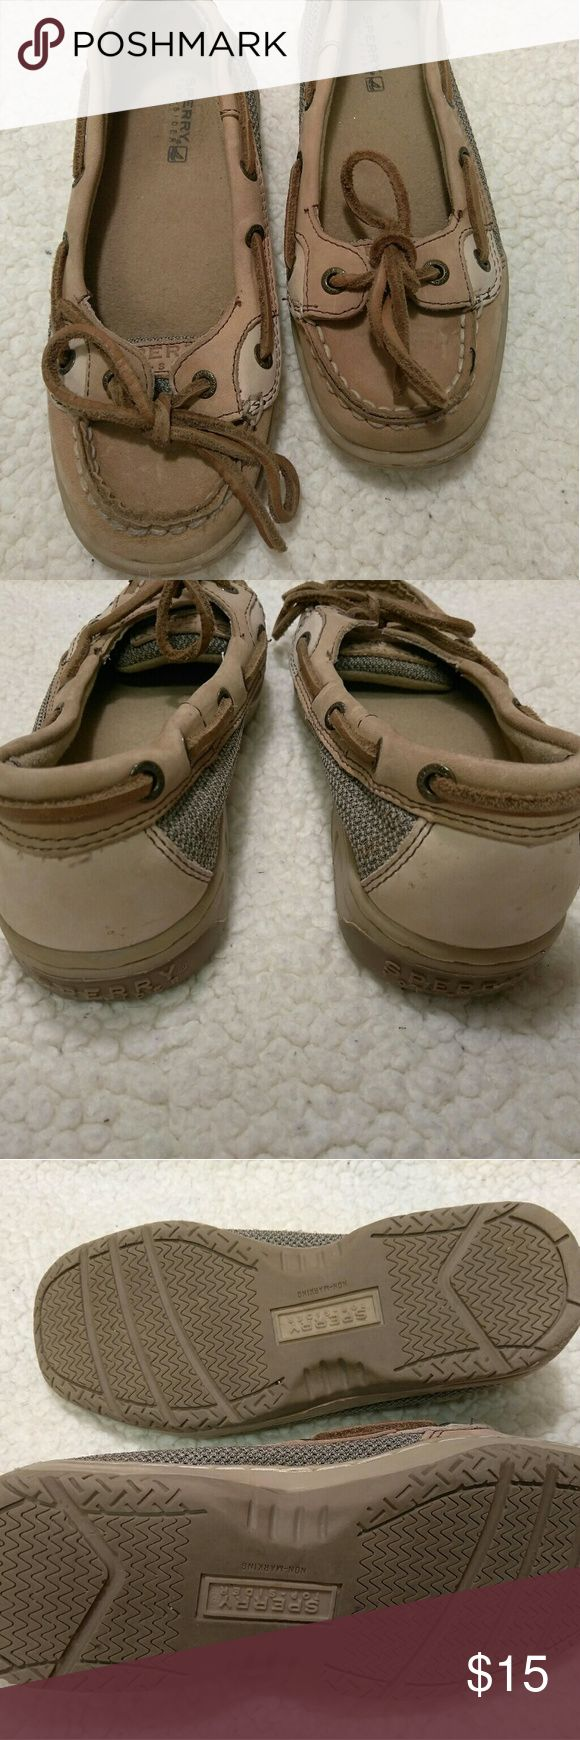 Girls SPERRY TOP SLIDER Really cute shoe with lace tie in front. Good pre loved condition. Sperry Top-Sider Shoes